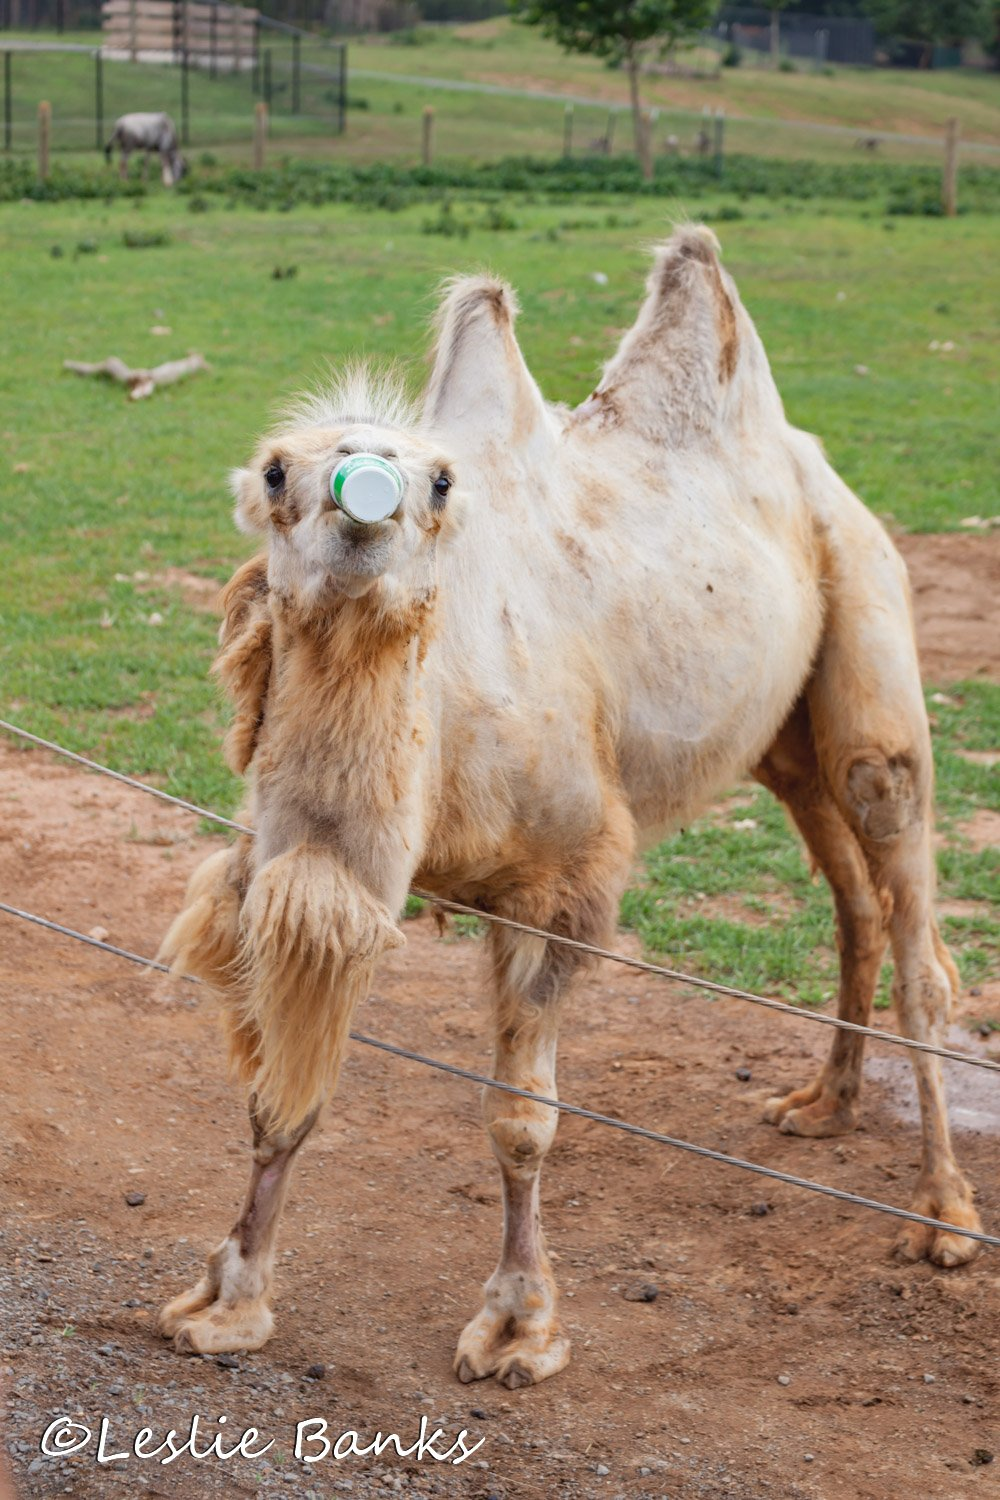 Camel eating a cup